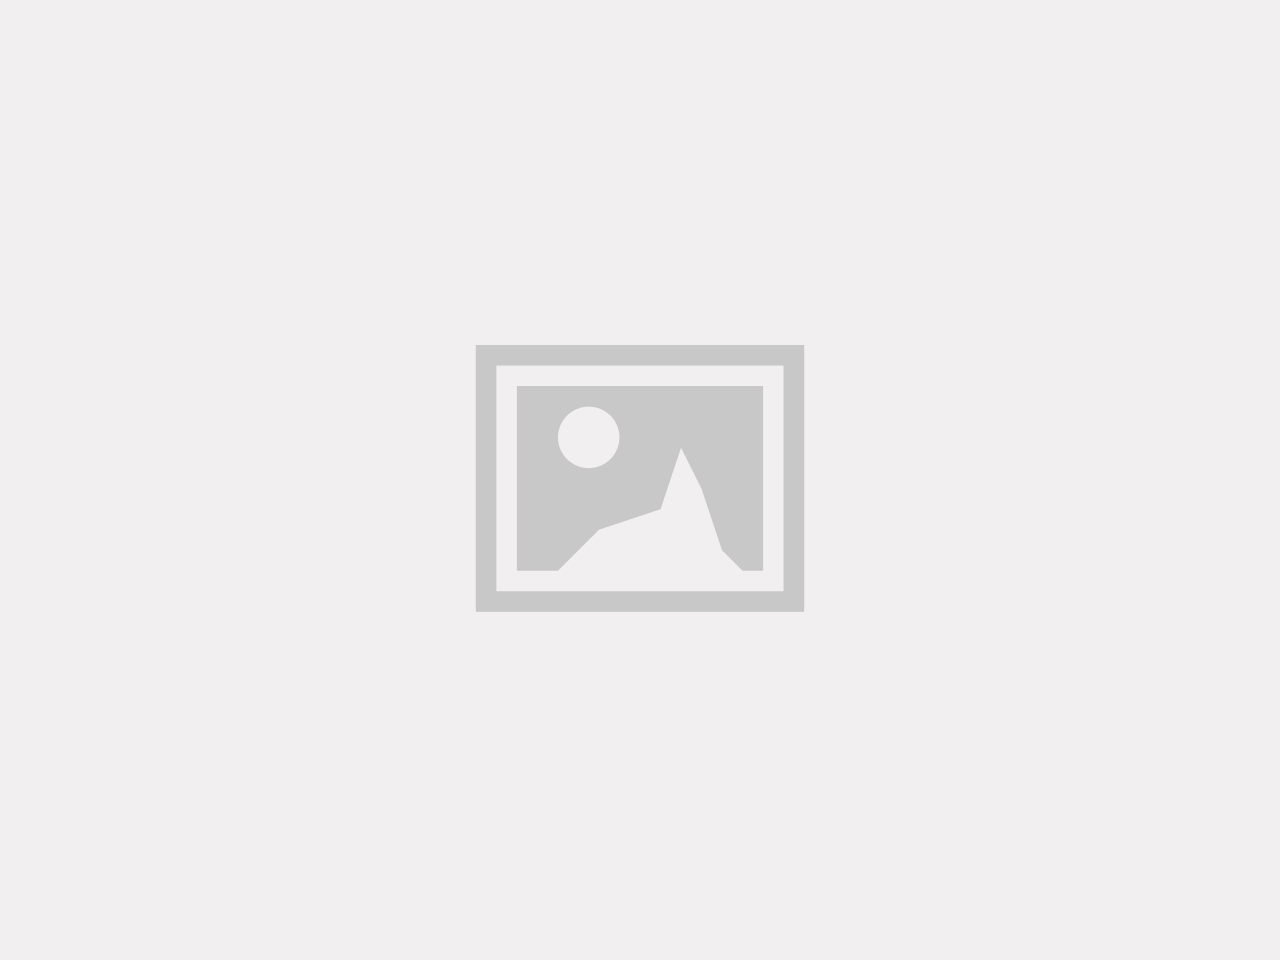 CS Unplugged